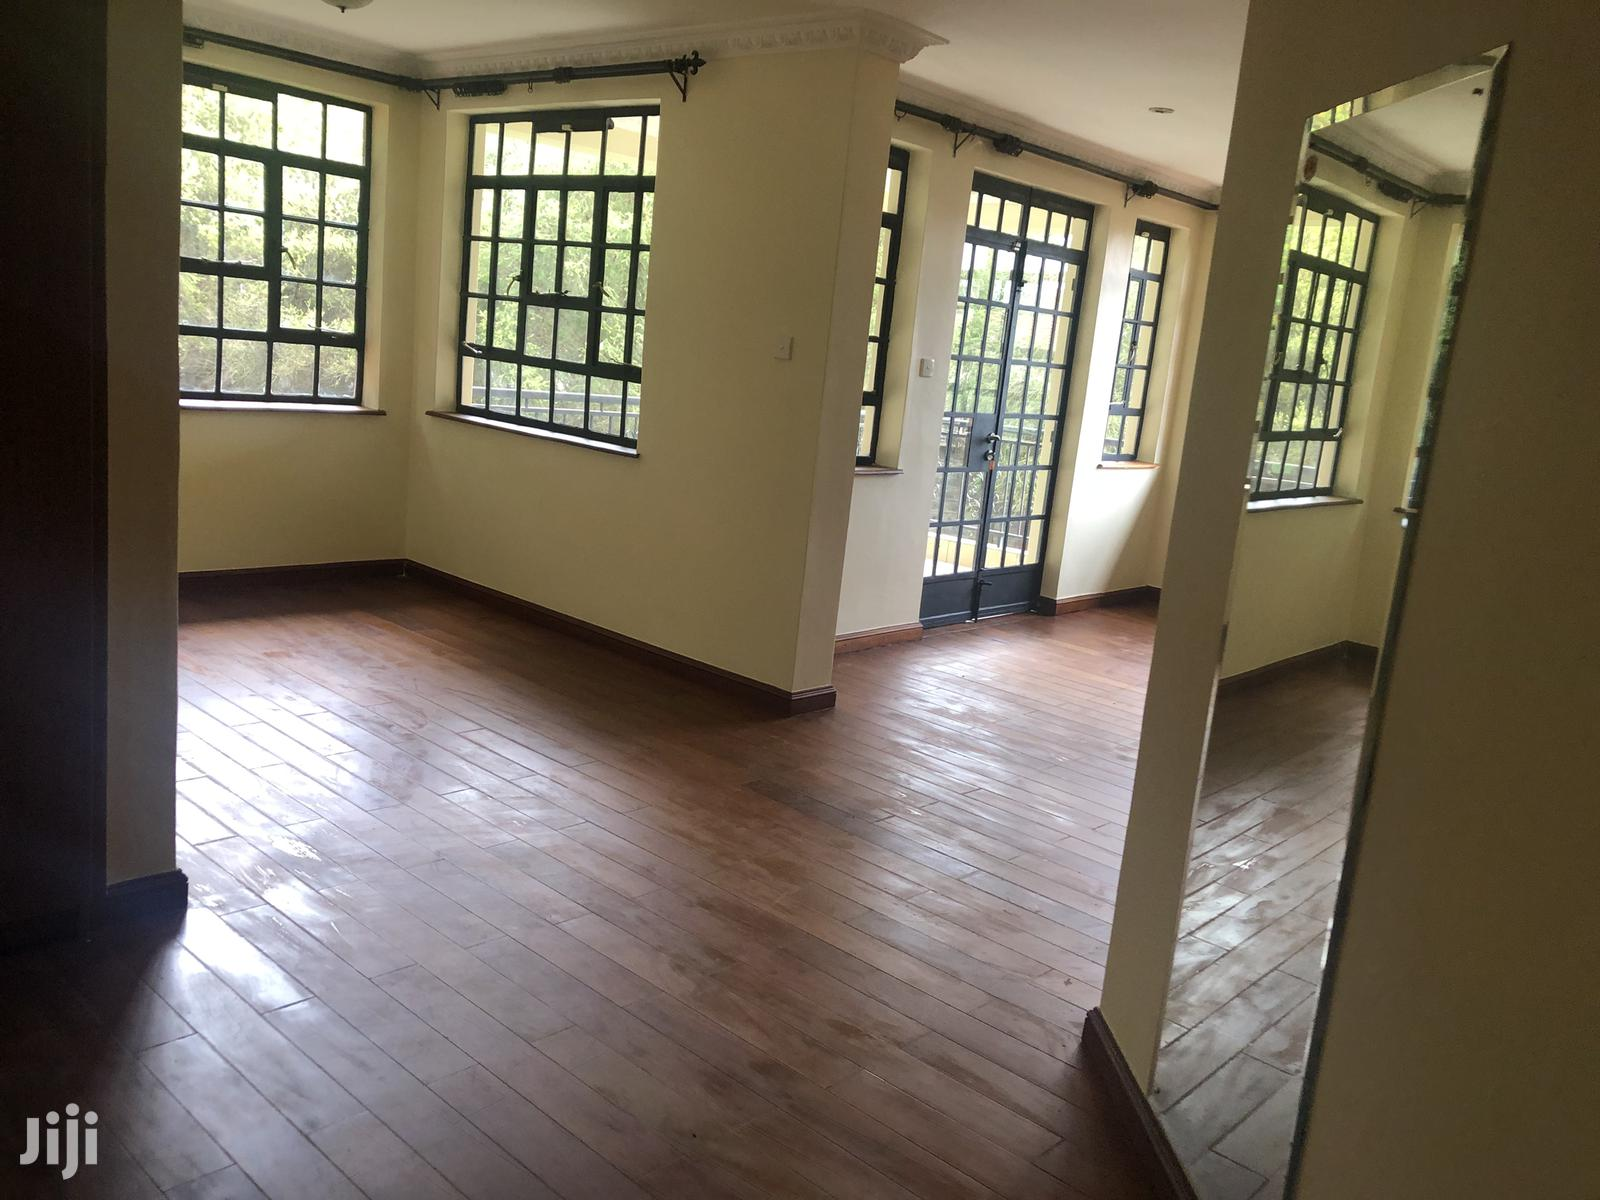 5 Bedrooms House For Sale In Runda | Houses & Apartments For Sale for sale in Runda, Nairobi, Kenya